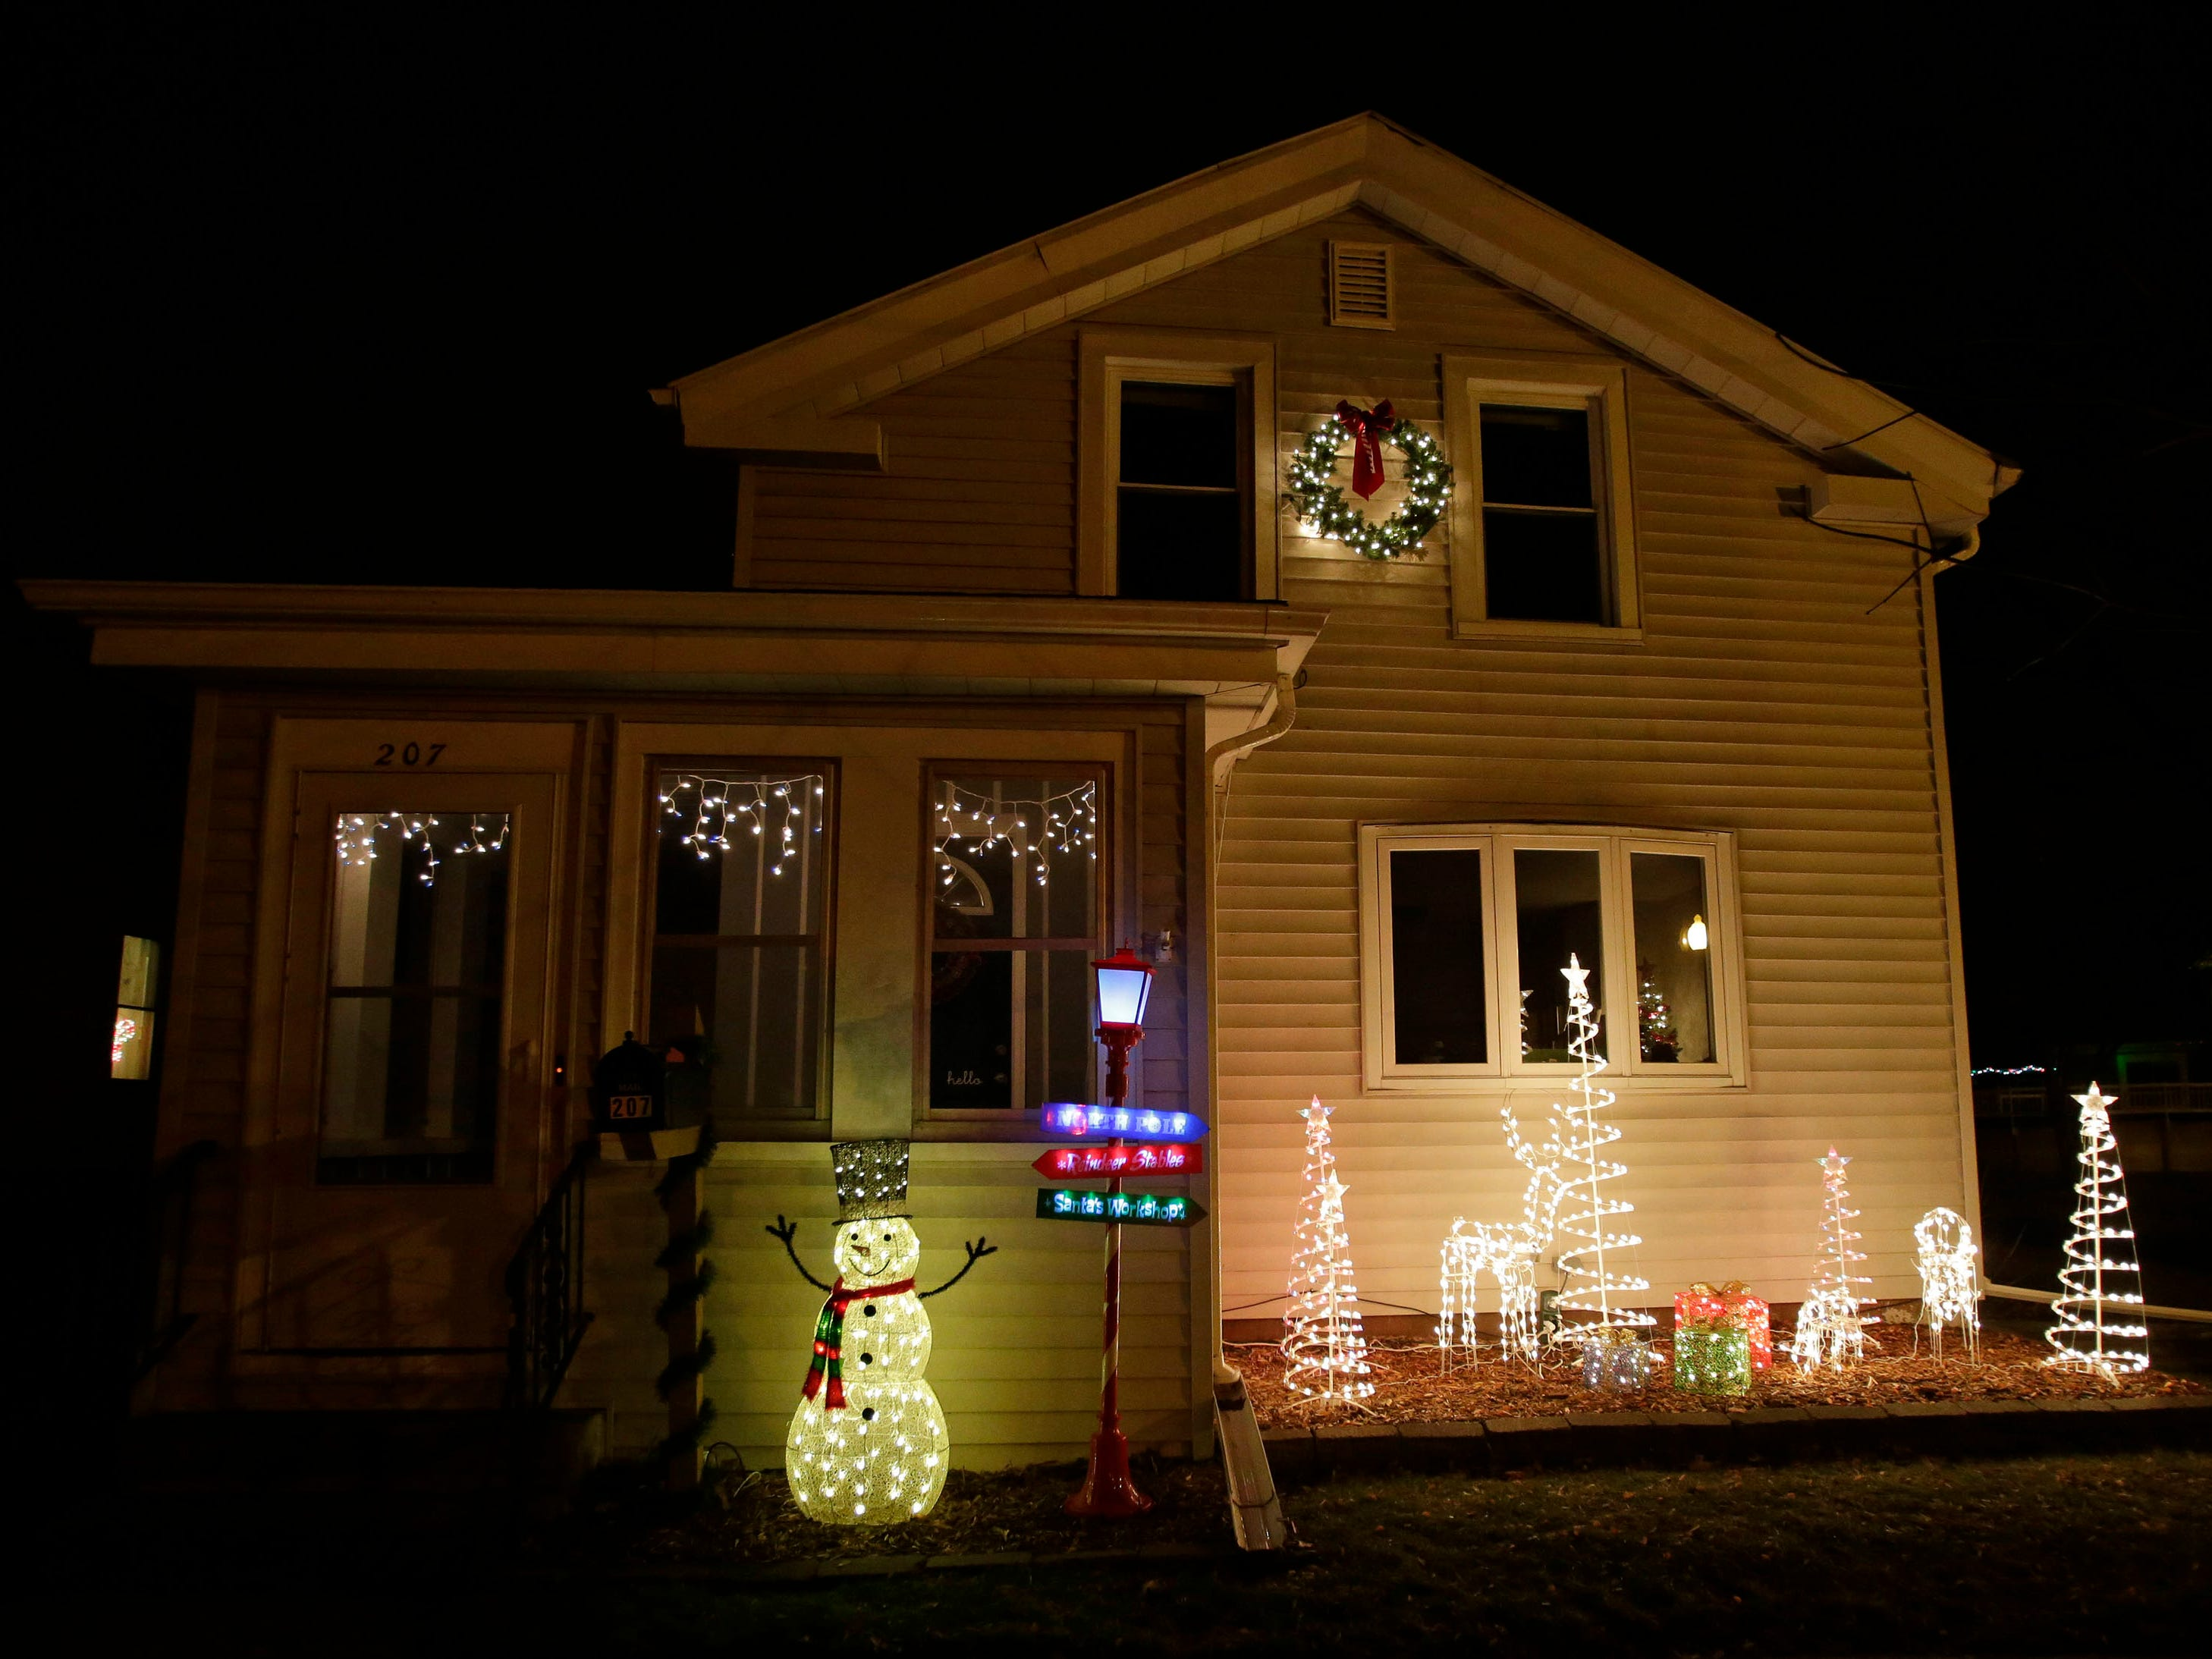 A home on Buffalo St. is decorated for the holidays, Wednesday, December 12, 2018, in Sheboygan Falls, Wis.